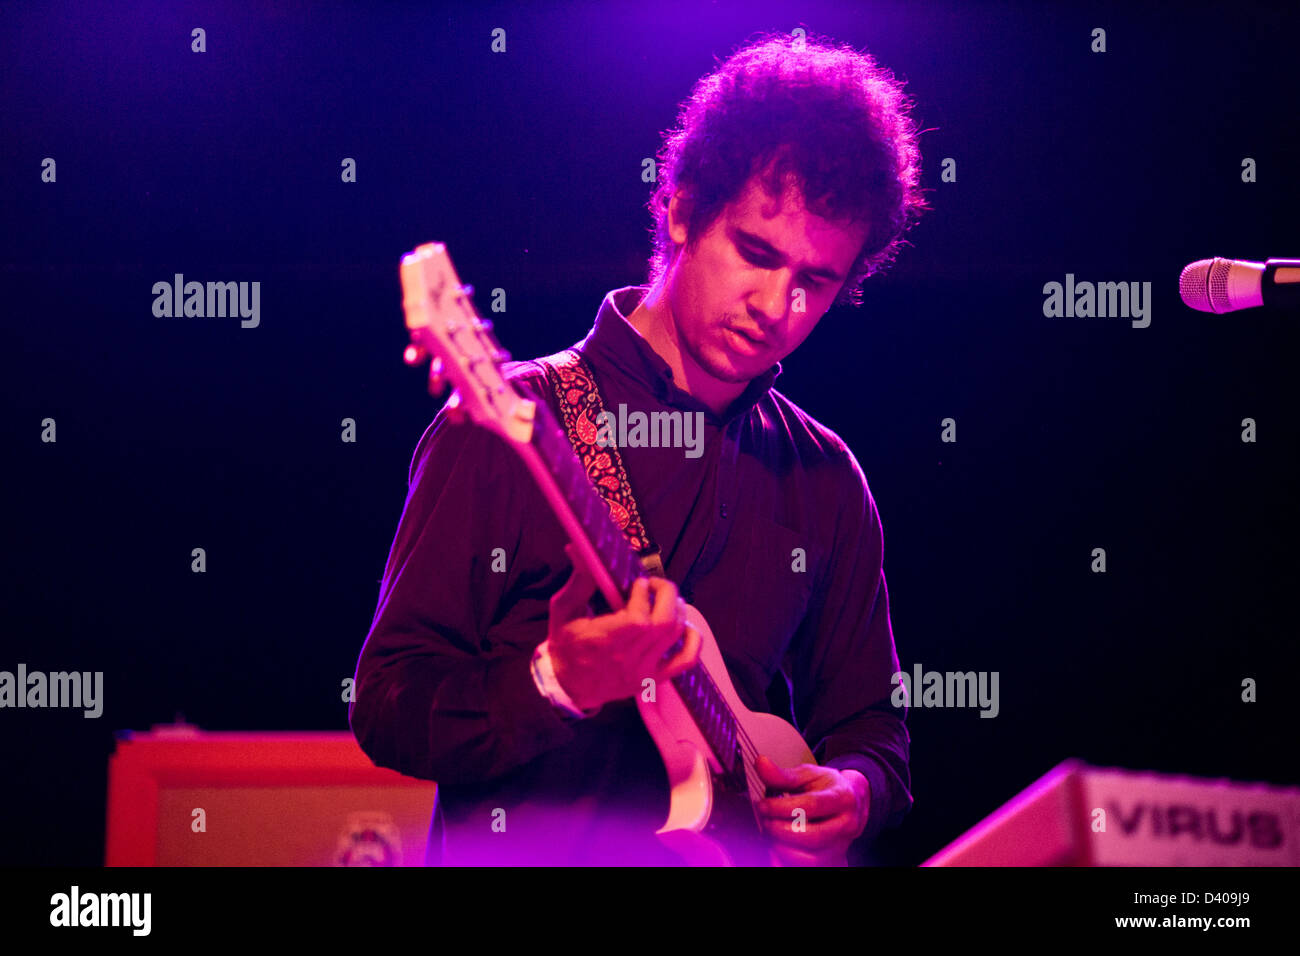 Omar Rodriguez Lopez performing with Bosnian Rainbows at Bottom Lounge in Chicago. - Stock Image